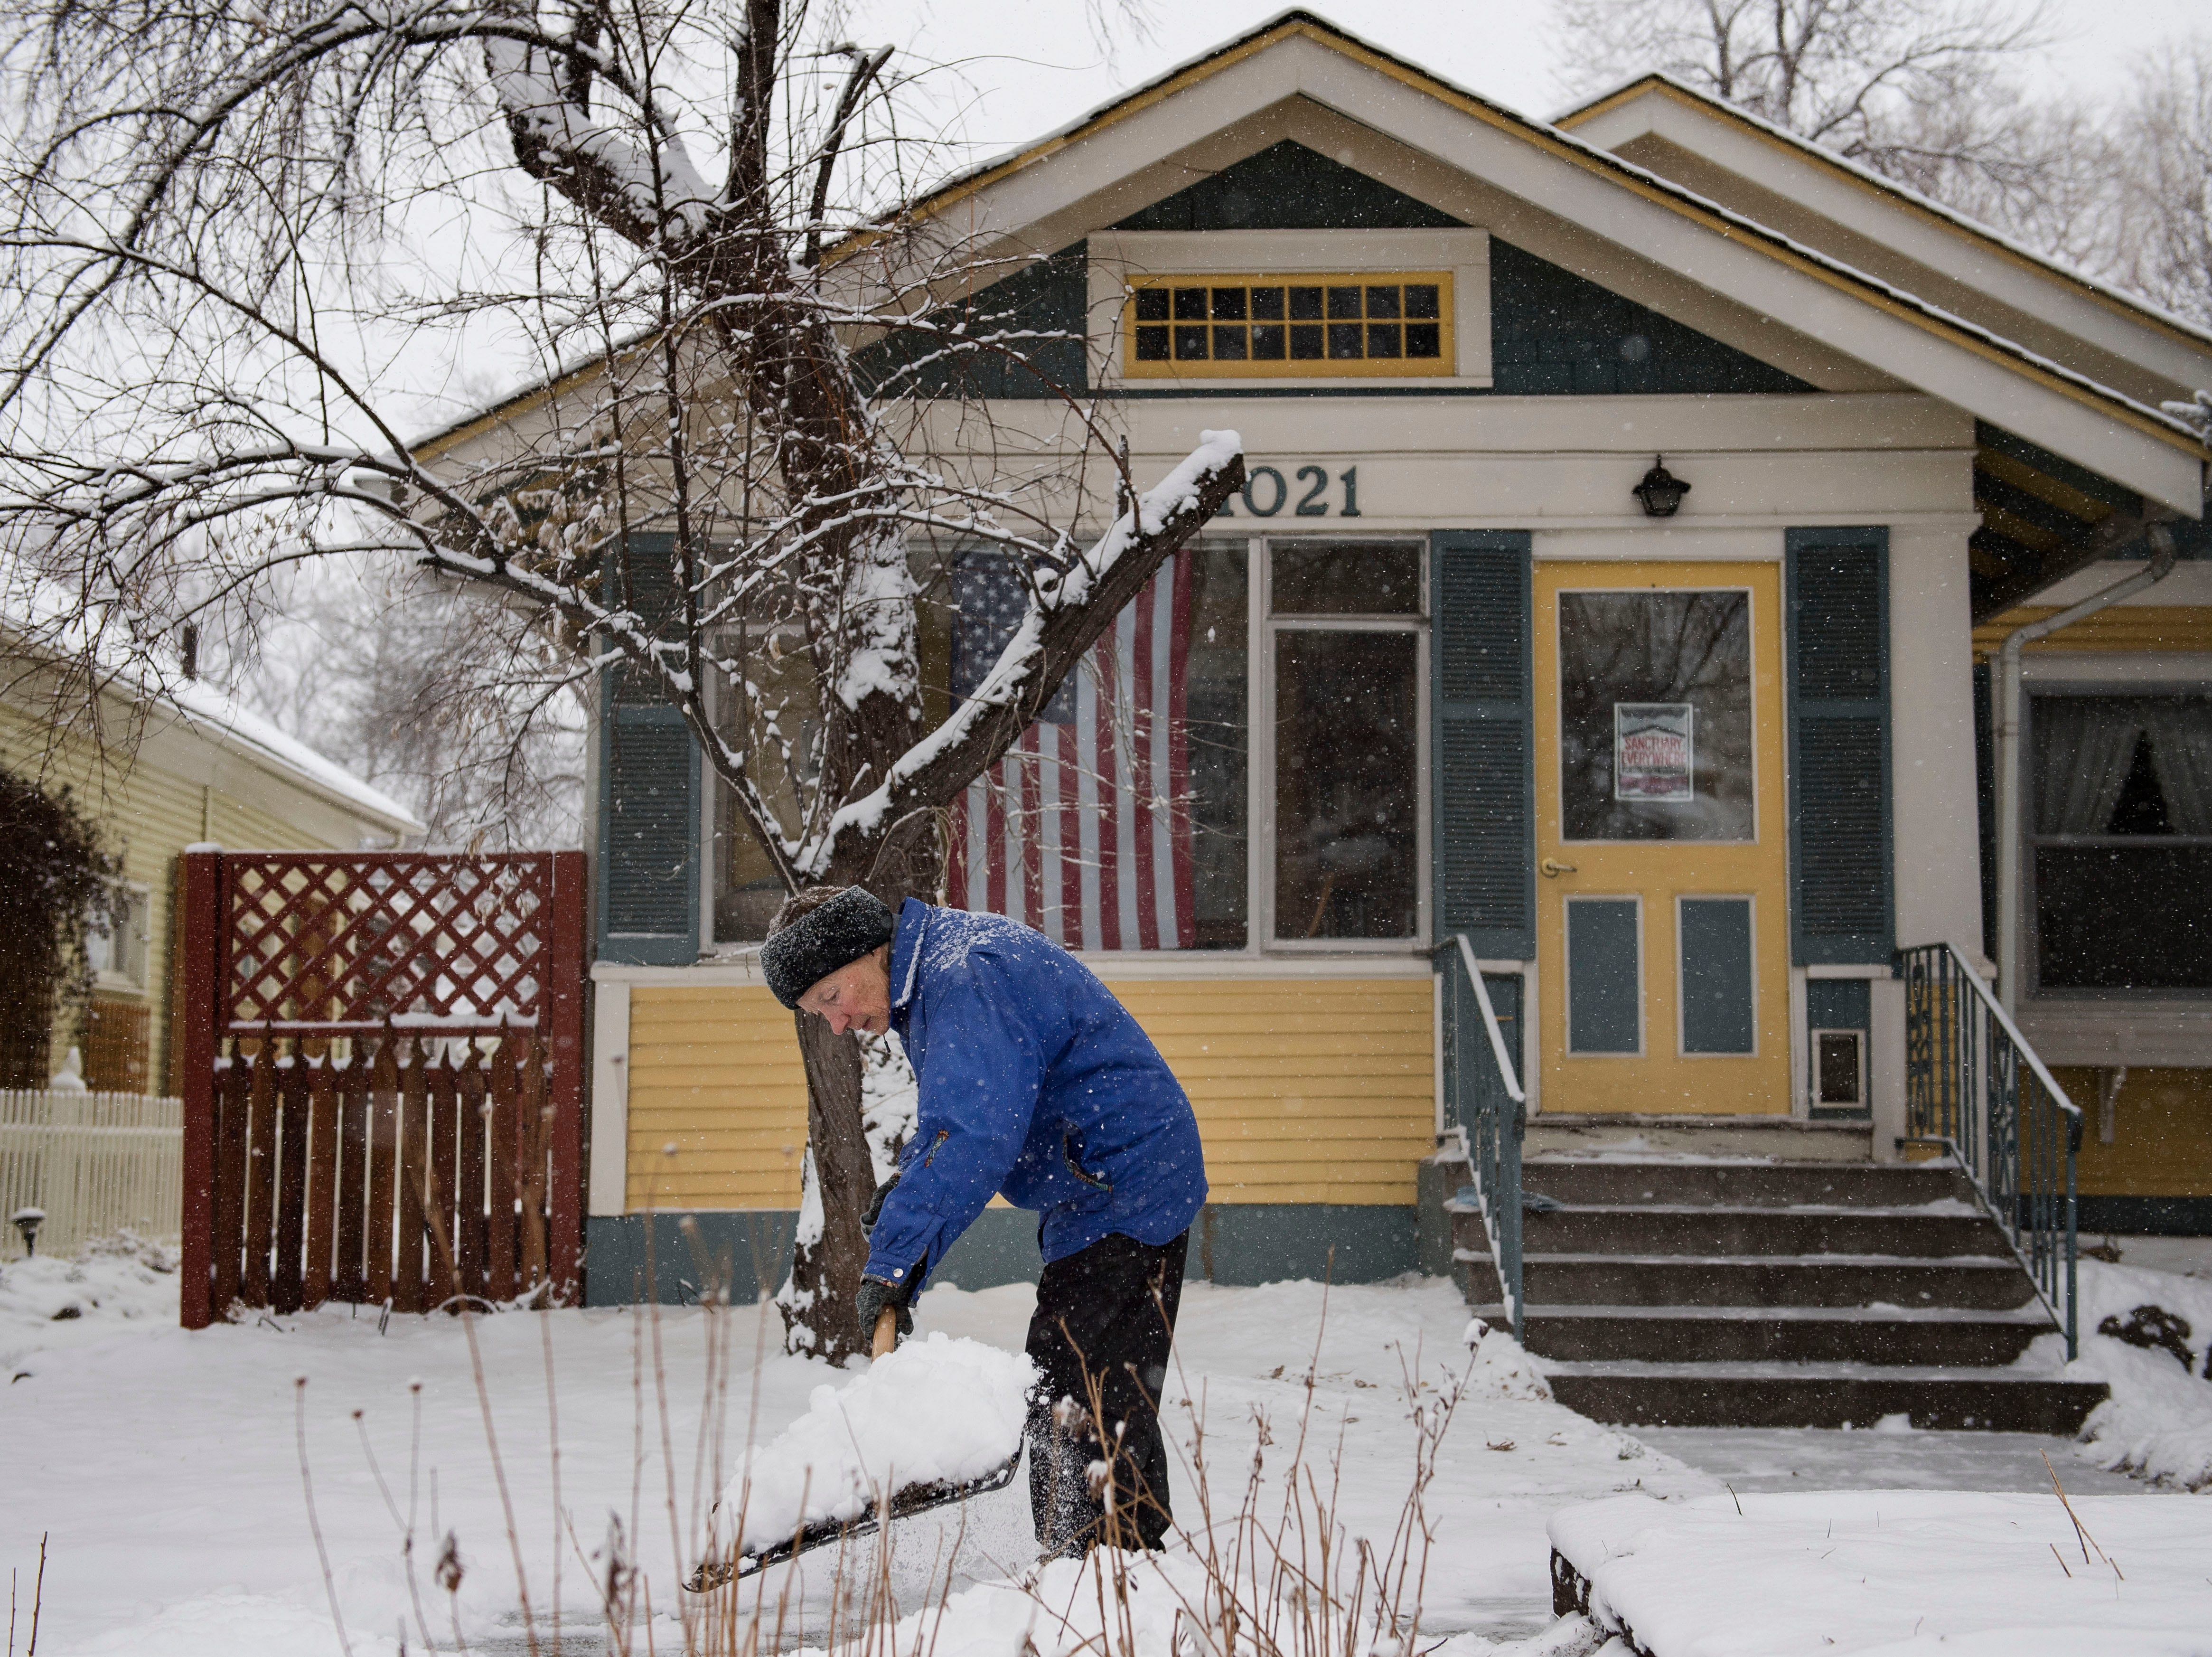 Miriam Beauman shovels the sidewalk in front of her home during a snowstorm on Wednesday, Feb. 6, 2019, in Fort Collins, Colo.